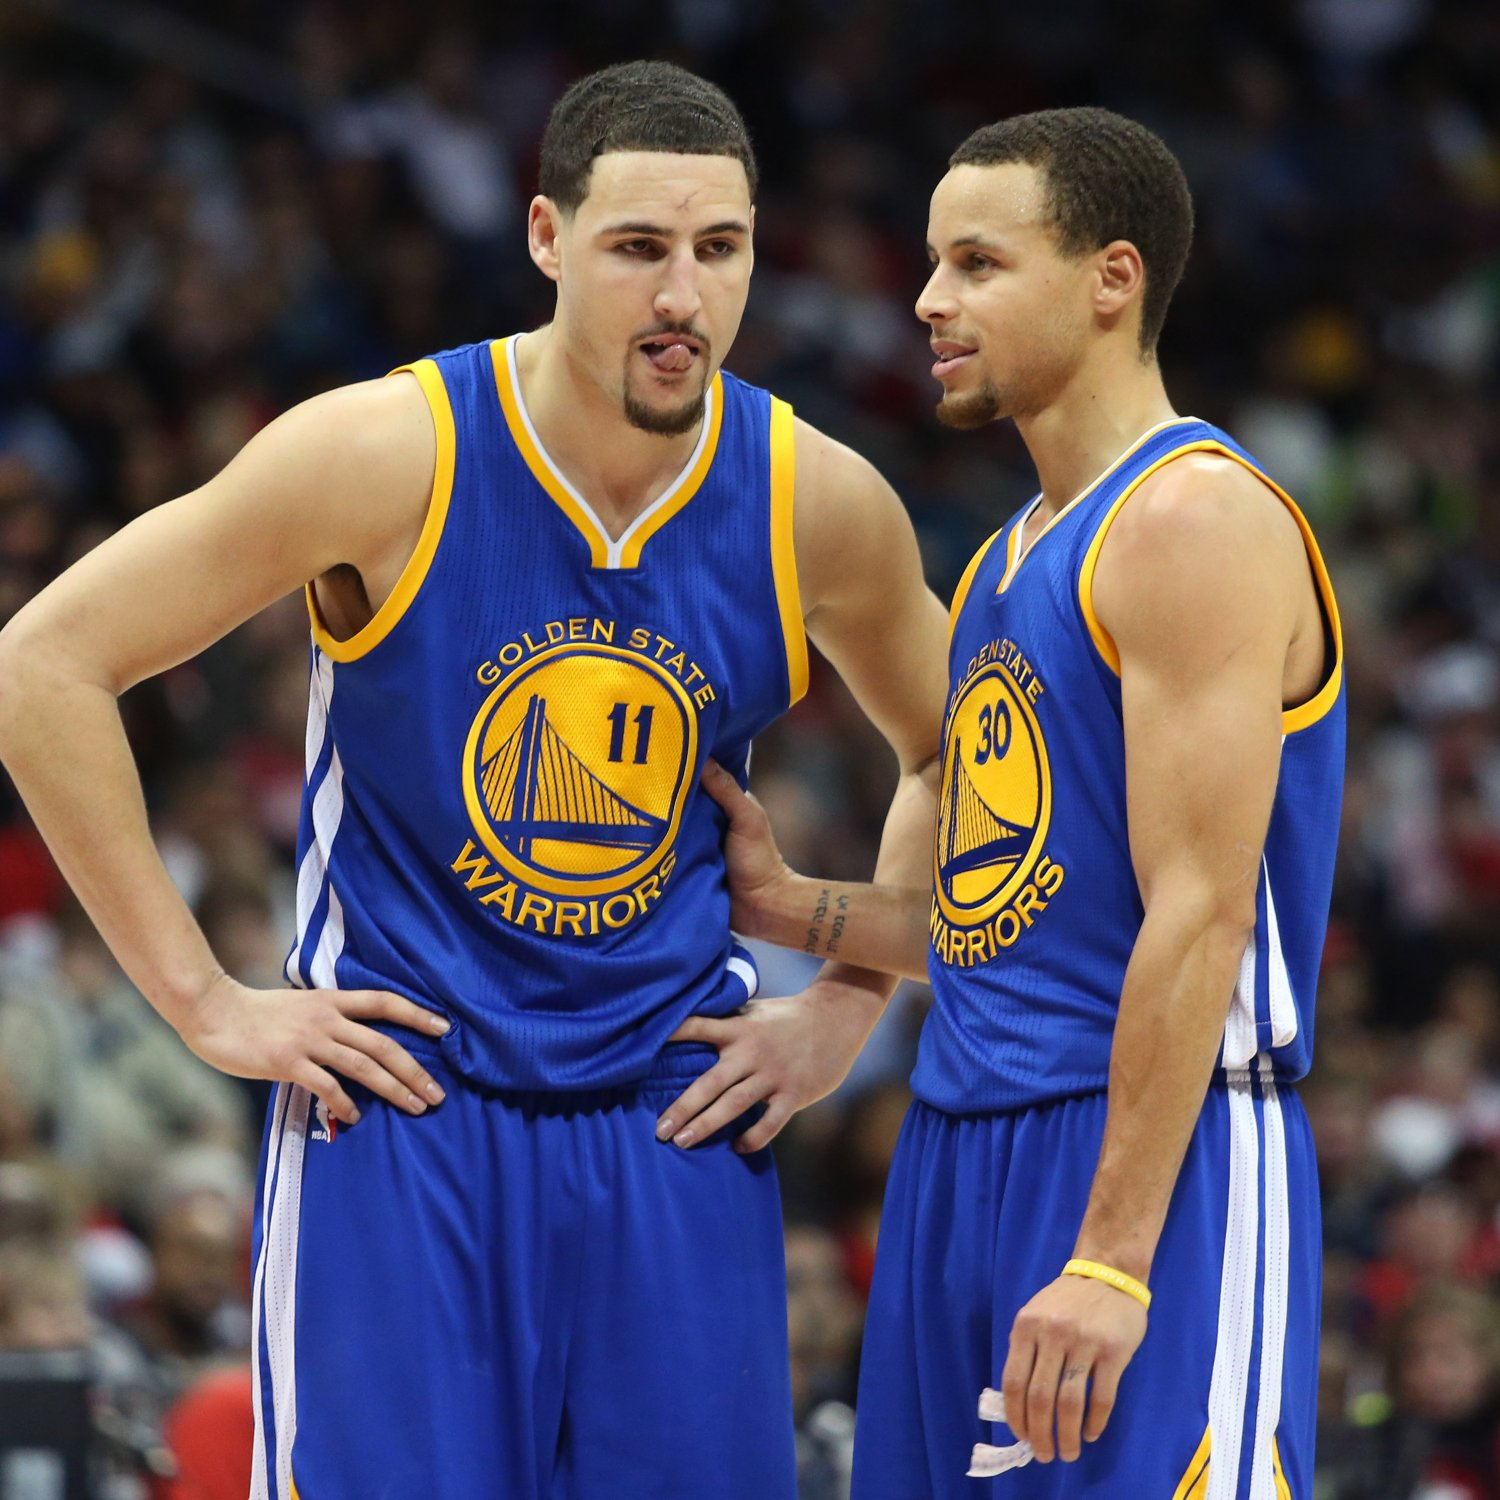 Golden State Warriors Vs. Washington Wizards: Live Score